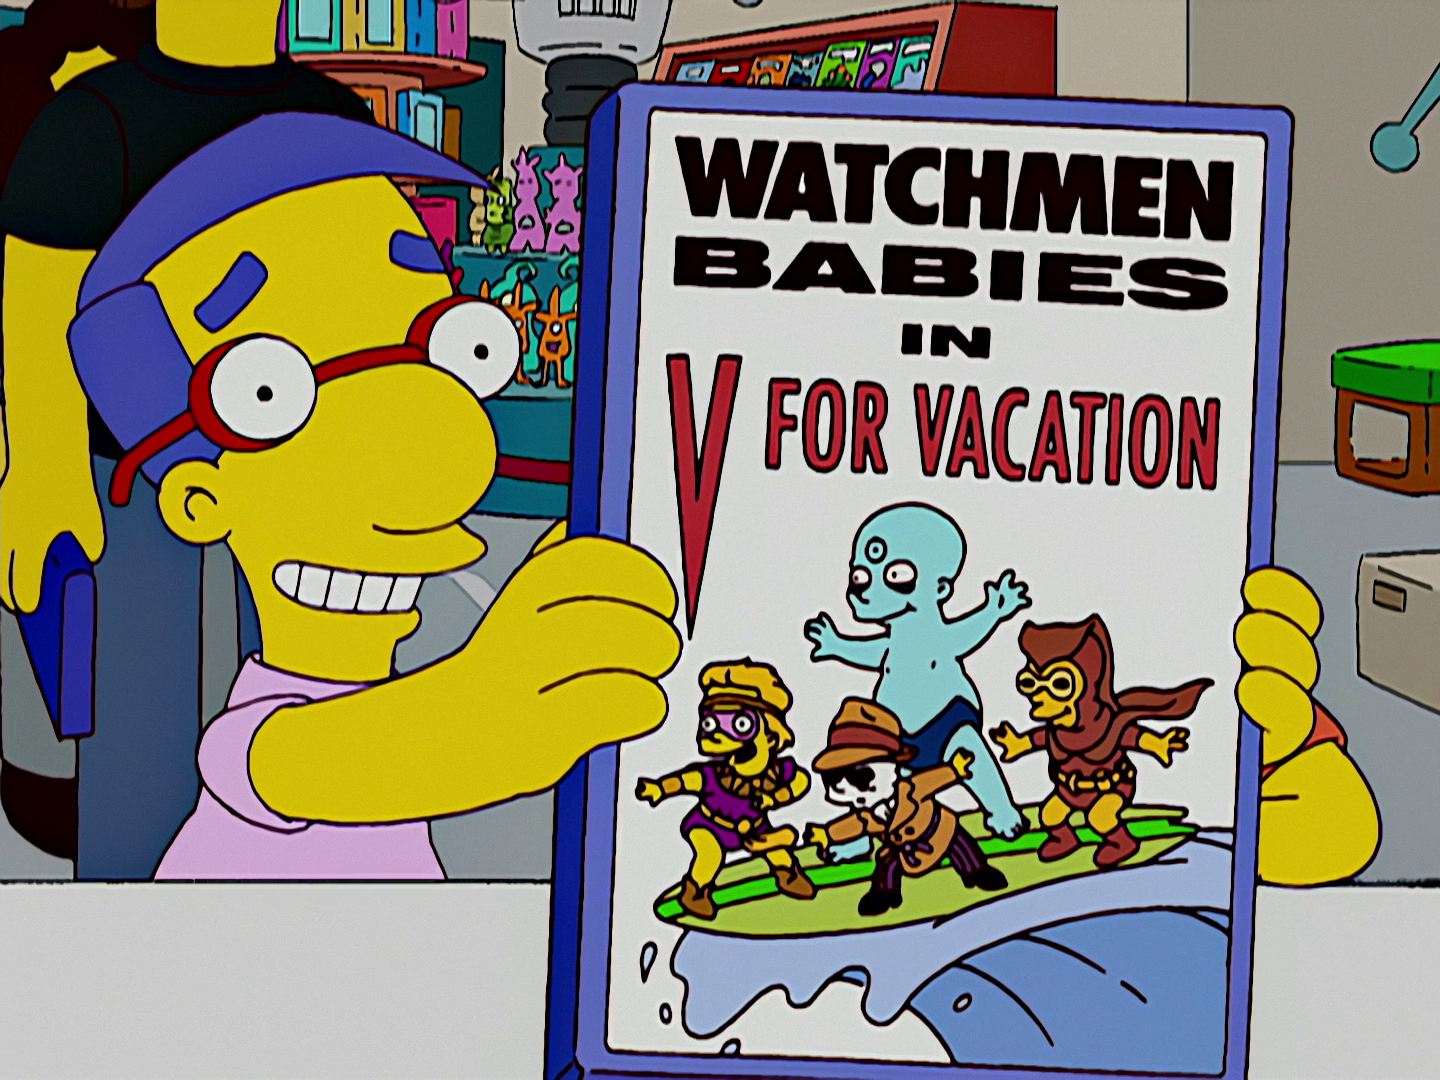 File:Watchmen Babies in V for Vacation.png